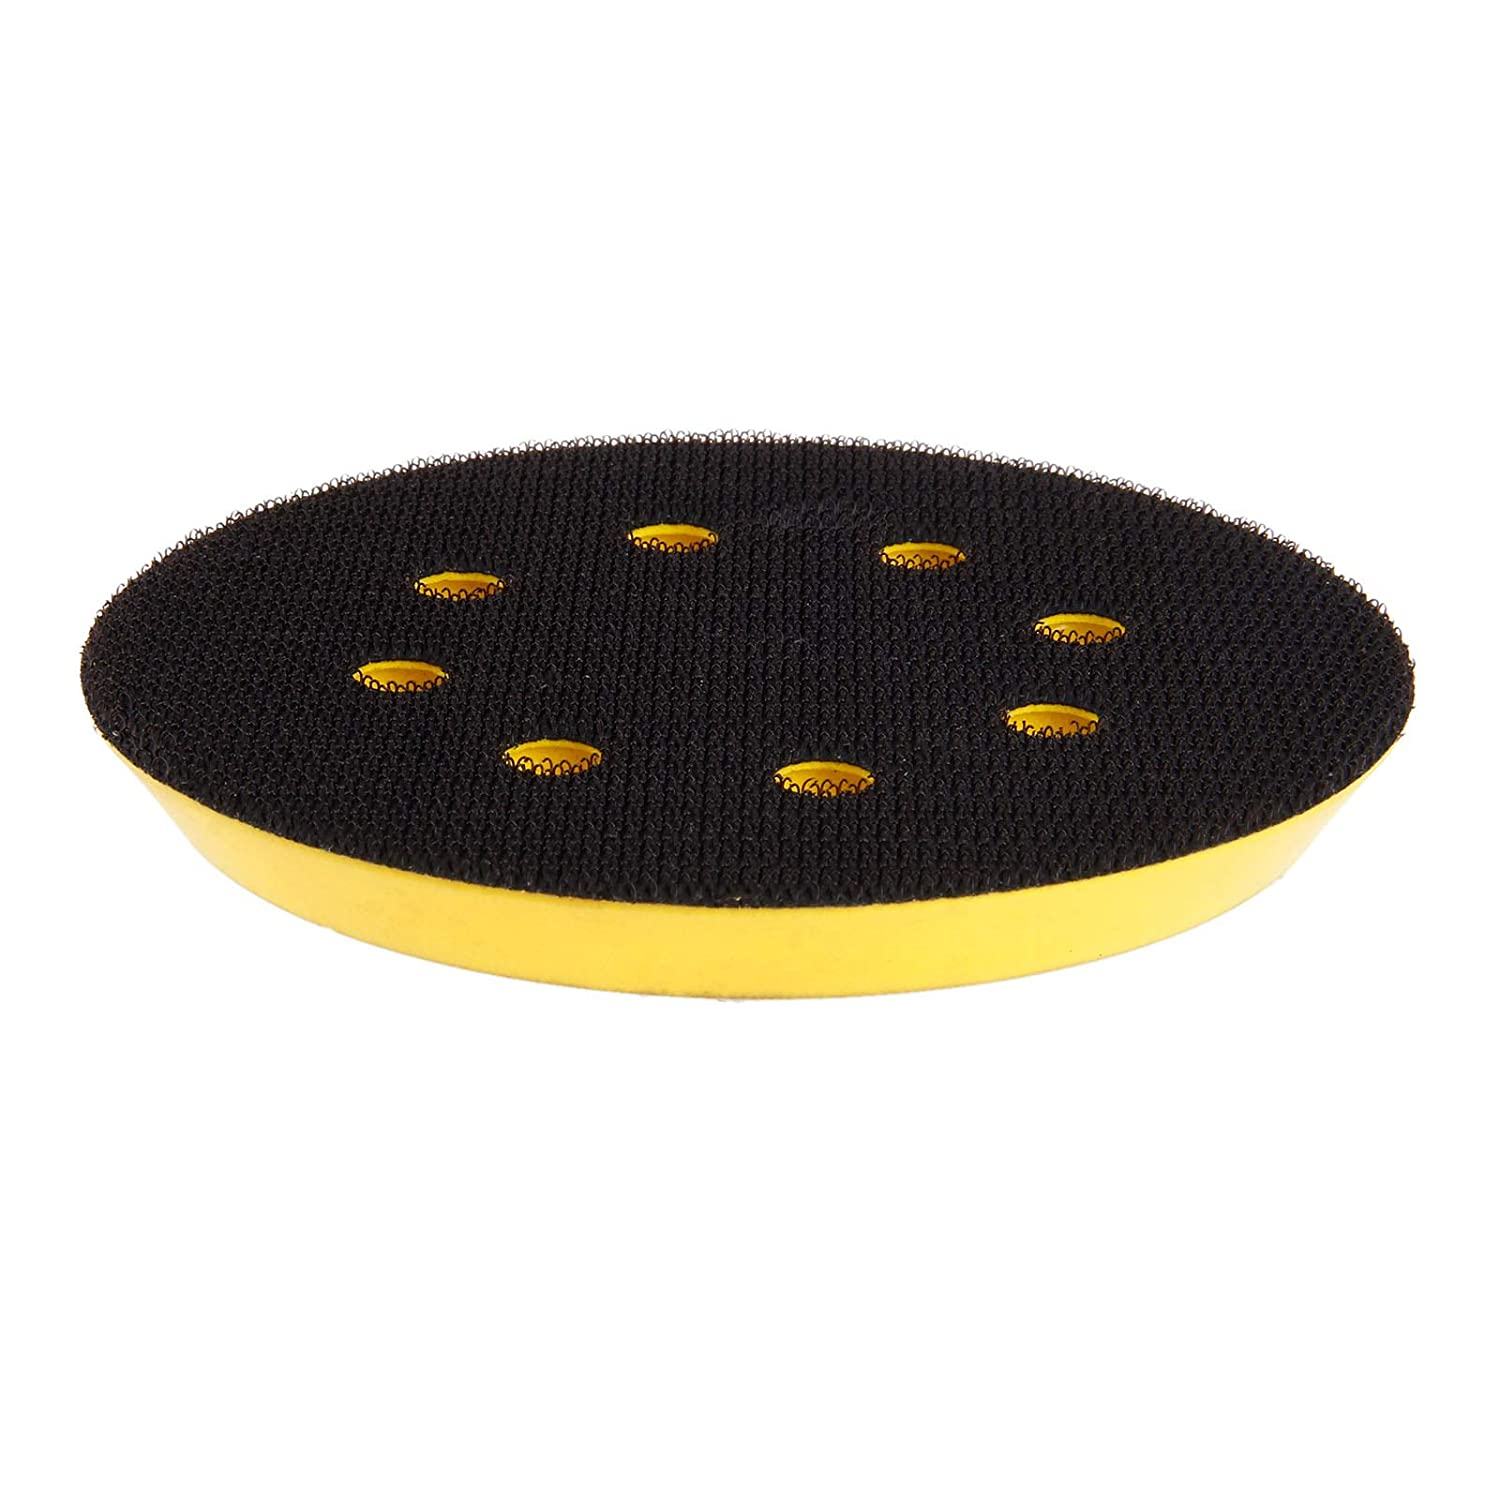 5 Inch Hook and Loop Sanding Pad with 8 Holes Threads for Pneumatic Sanders